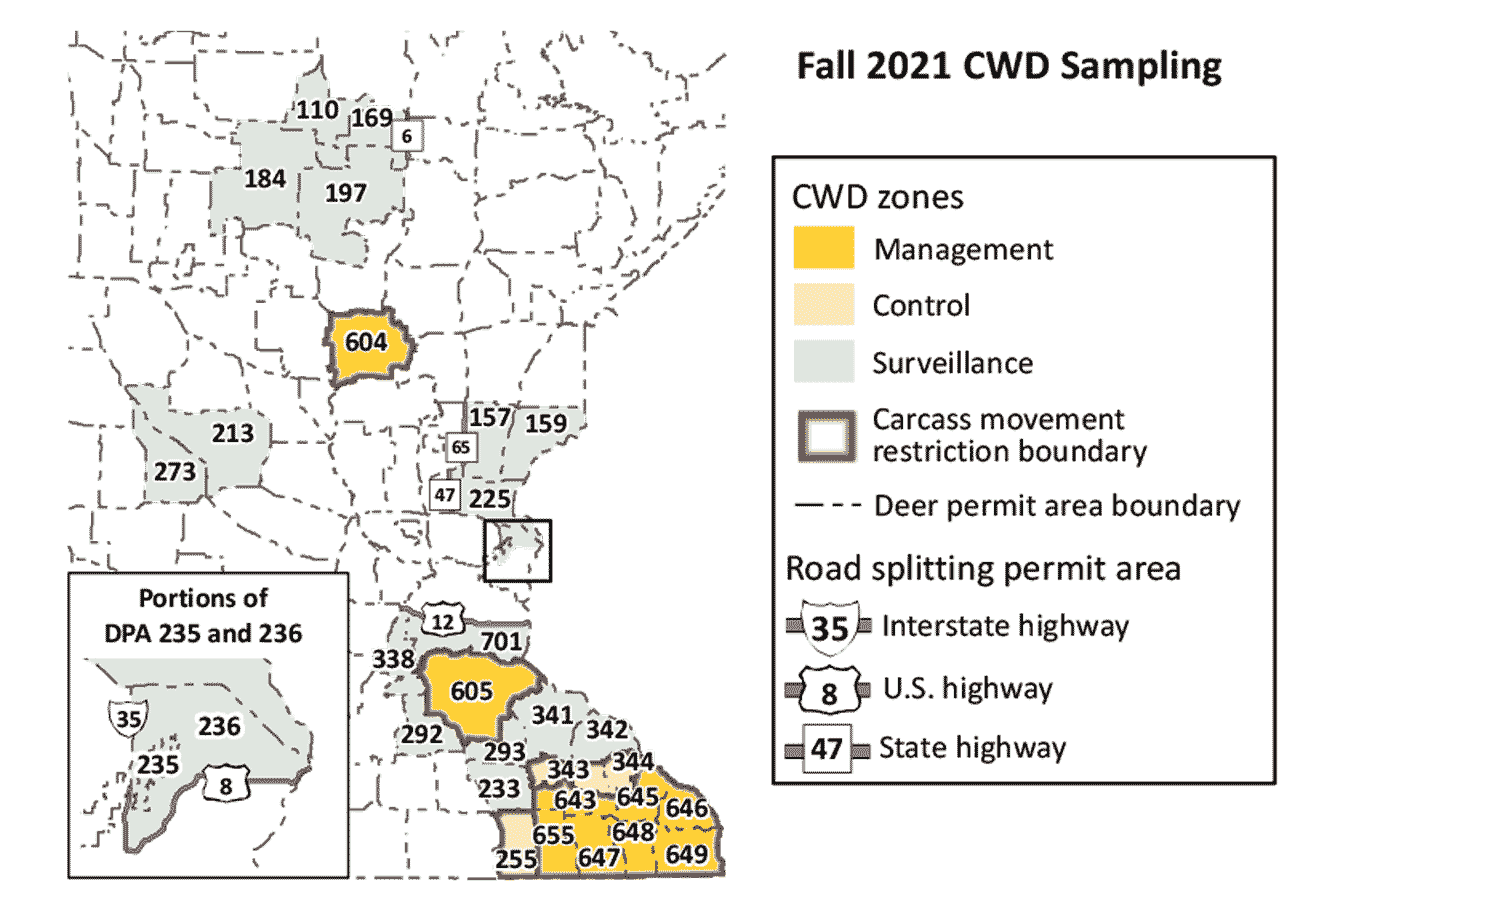 Map of portion of Minnesota showing the fall 2021 CWD zones.